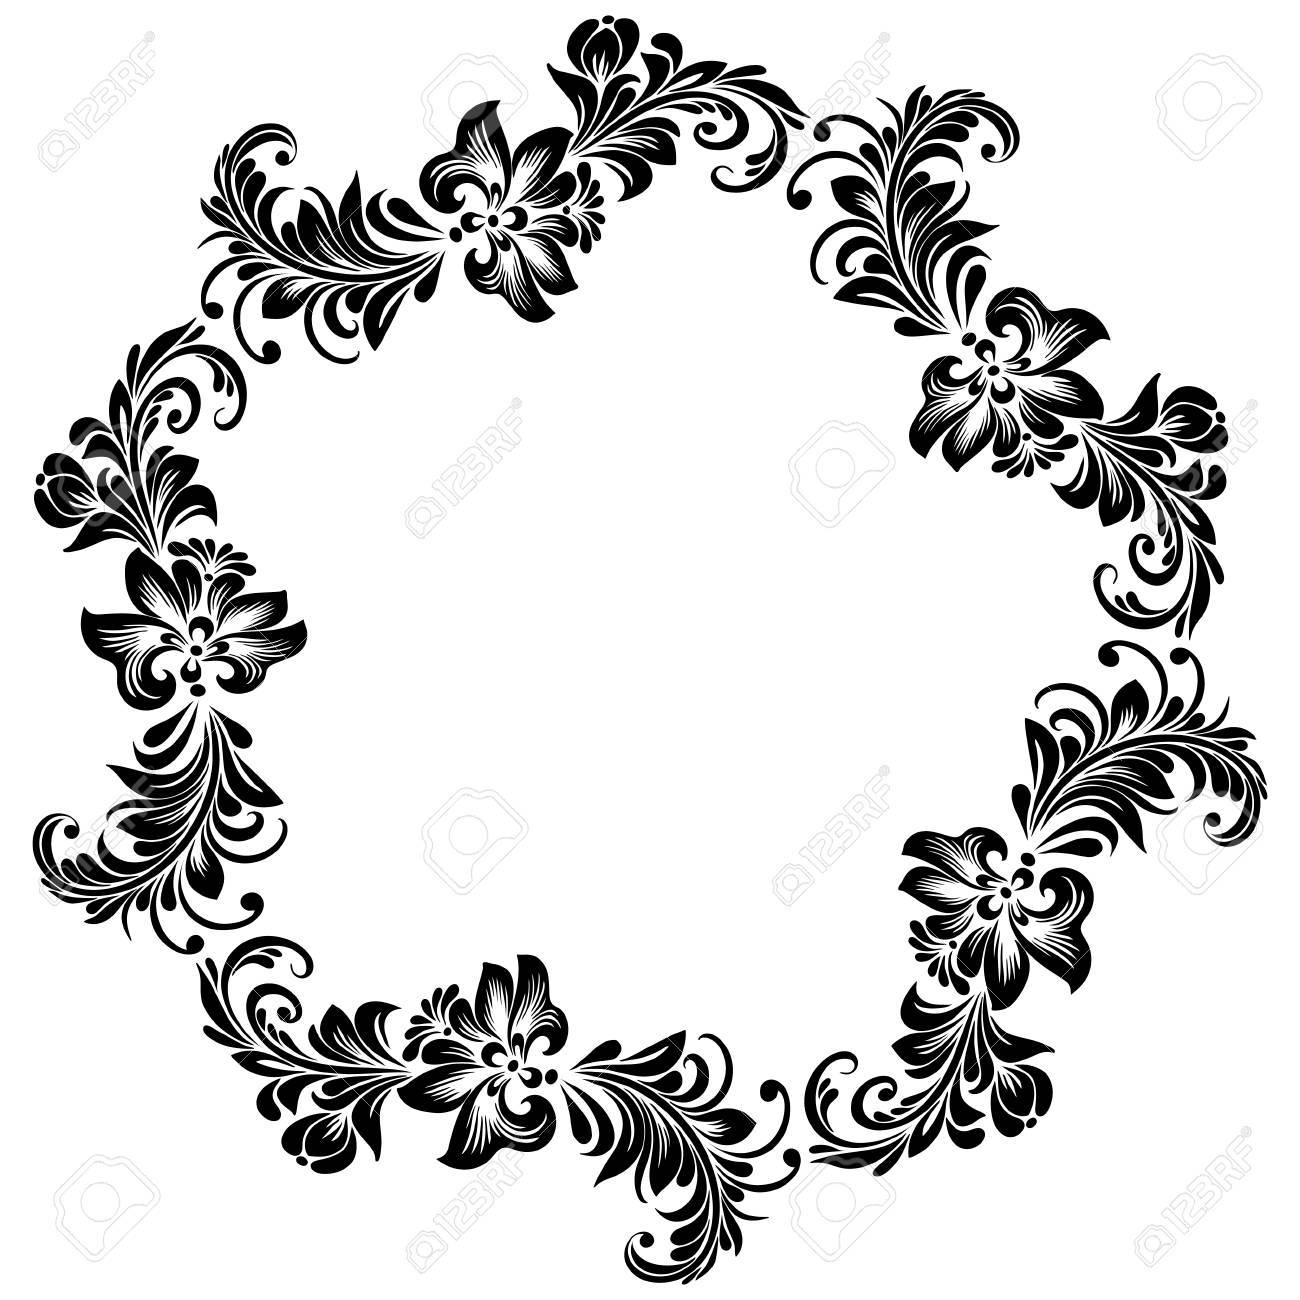 Vector Round Frame For Design With Stylized Floral Ornament ...